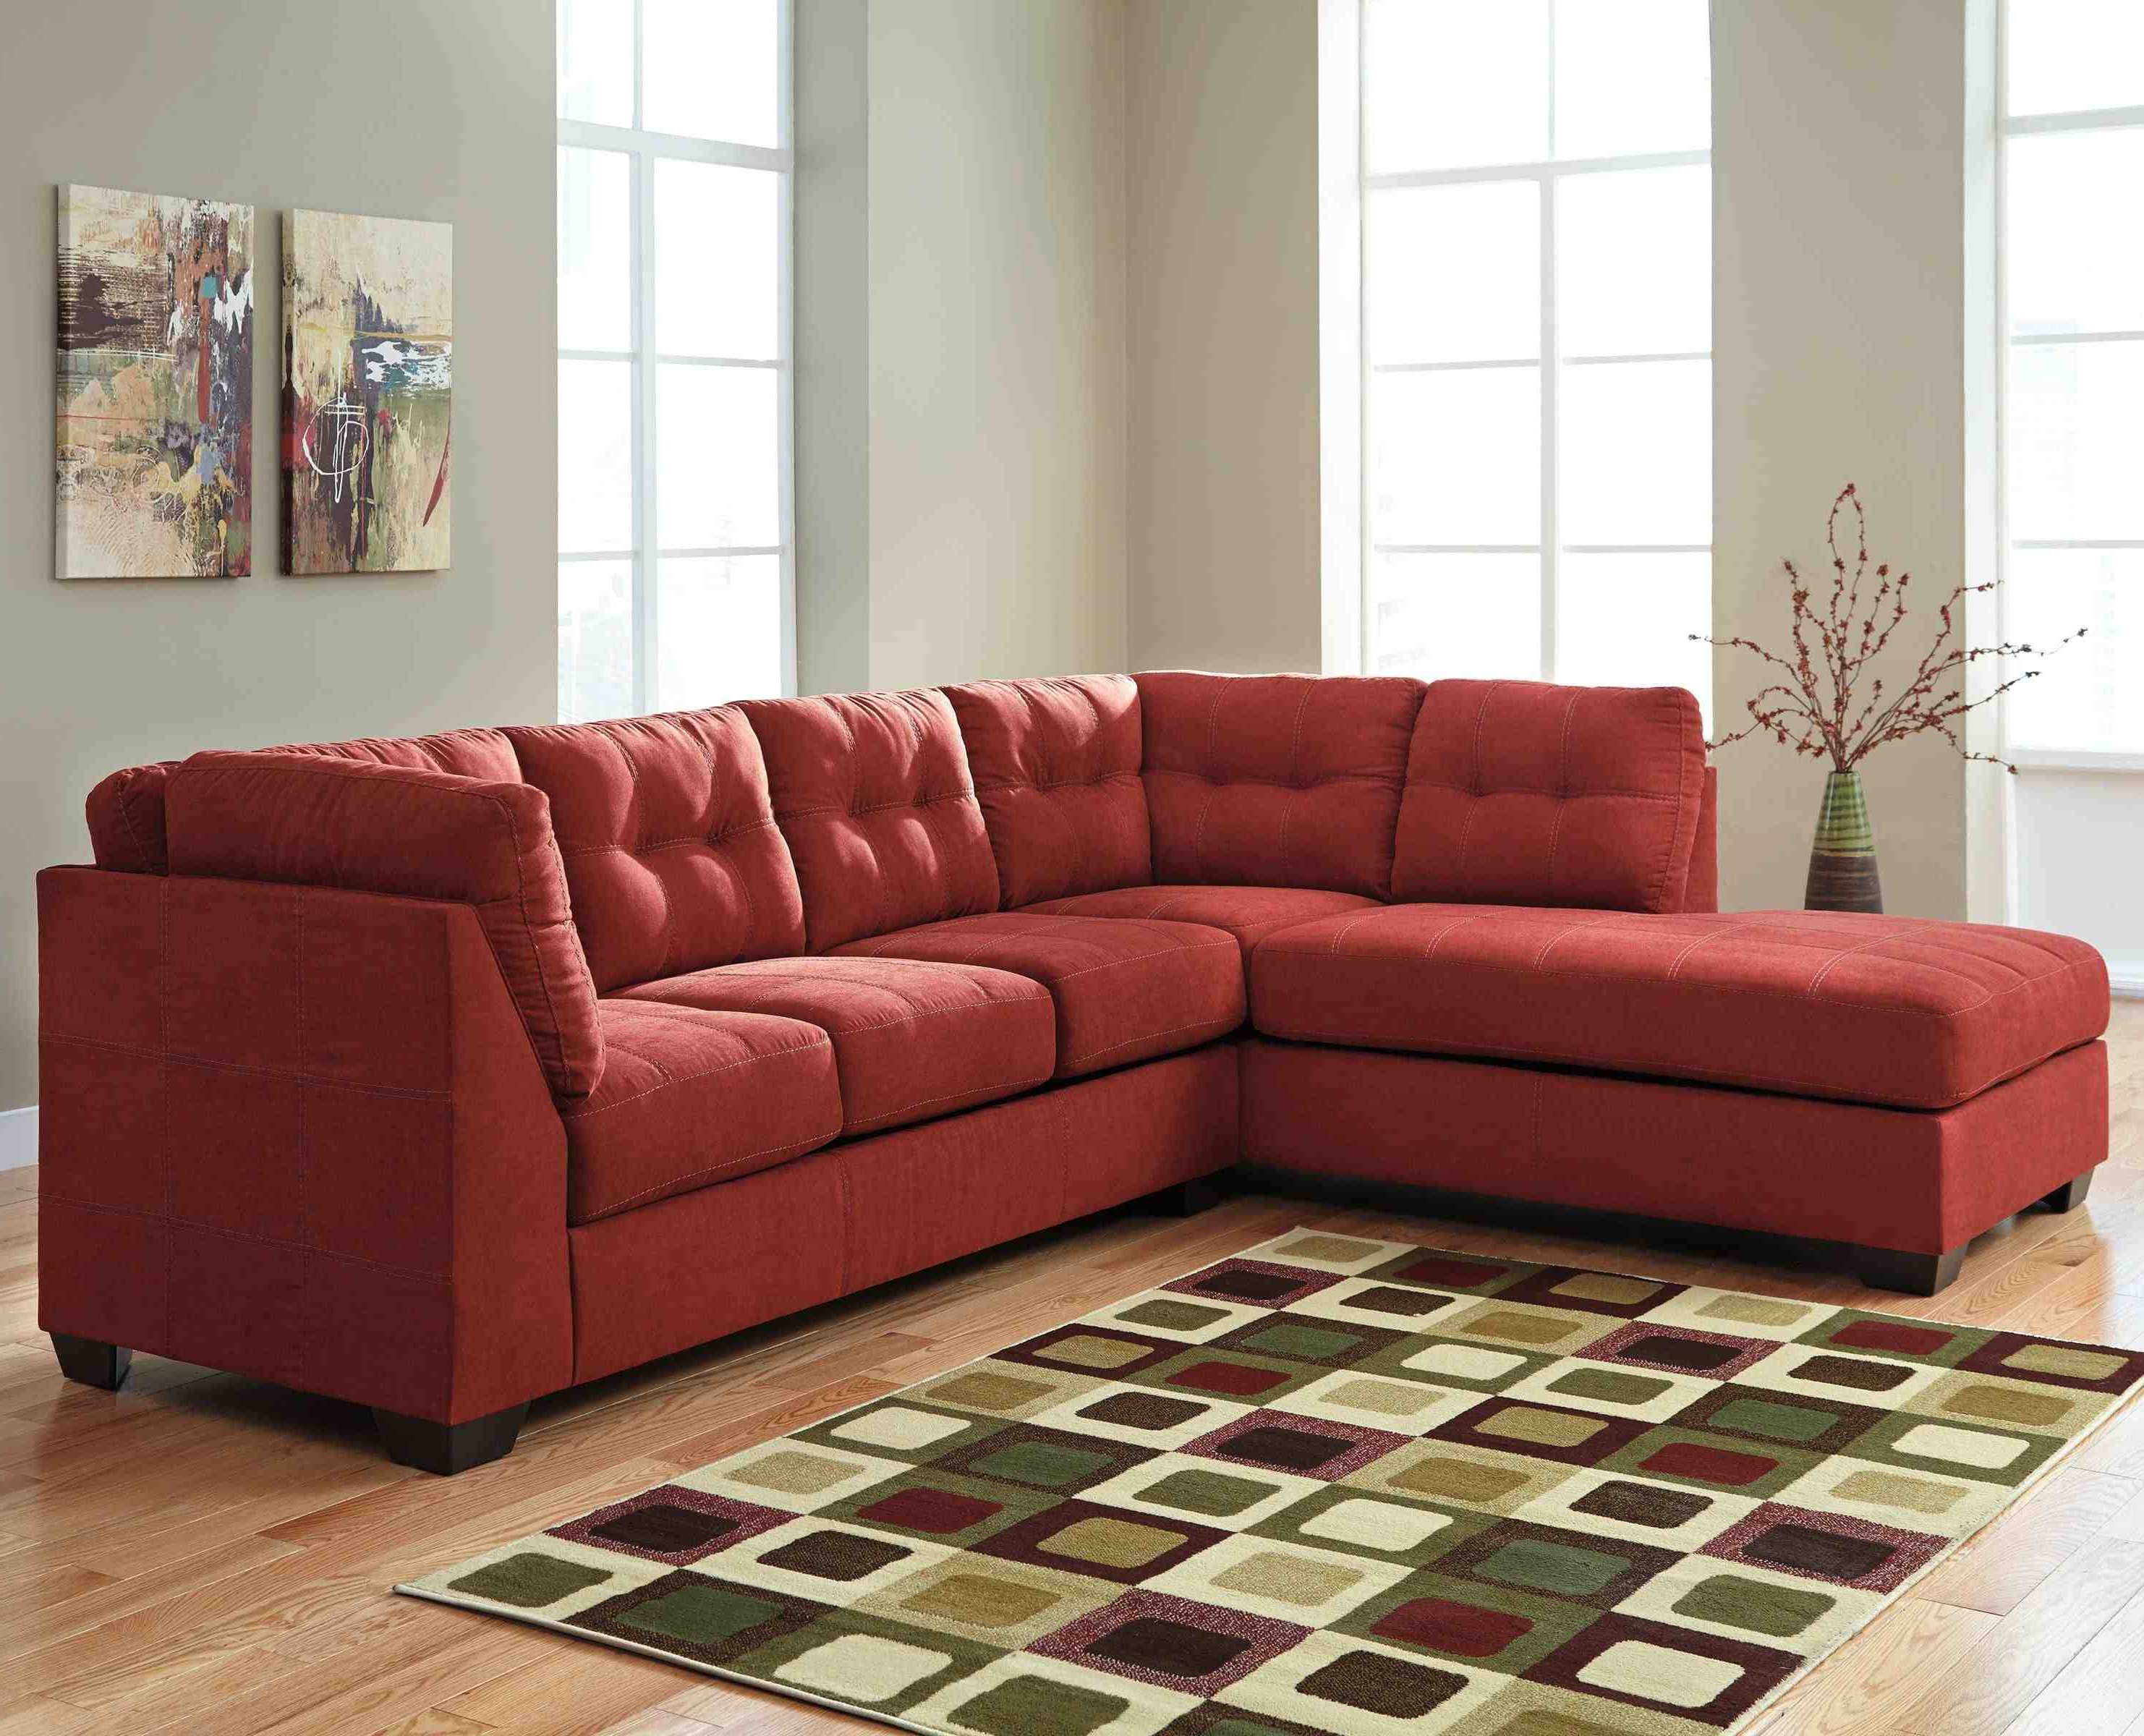 Fashionable Delano 2 Piece Sectional W/laf Oversized Chaise Living Spaces For Delano 2 Piece Sectionals With Laf Oversized Chaise (Gallery 14 of 20)